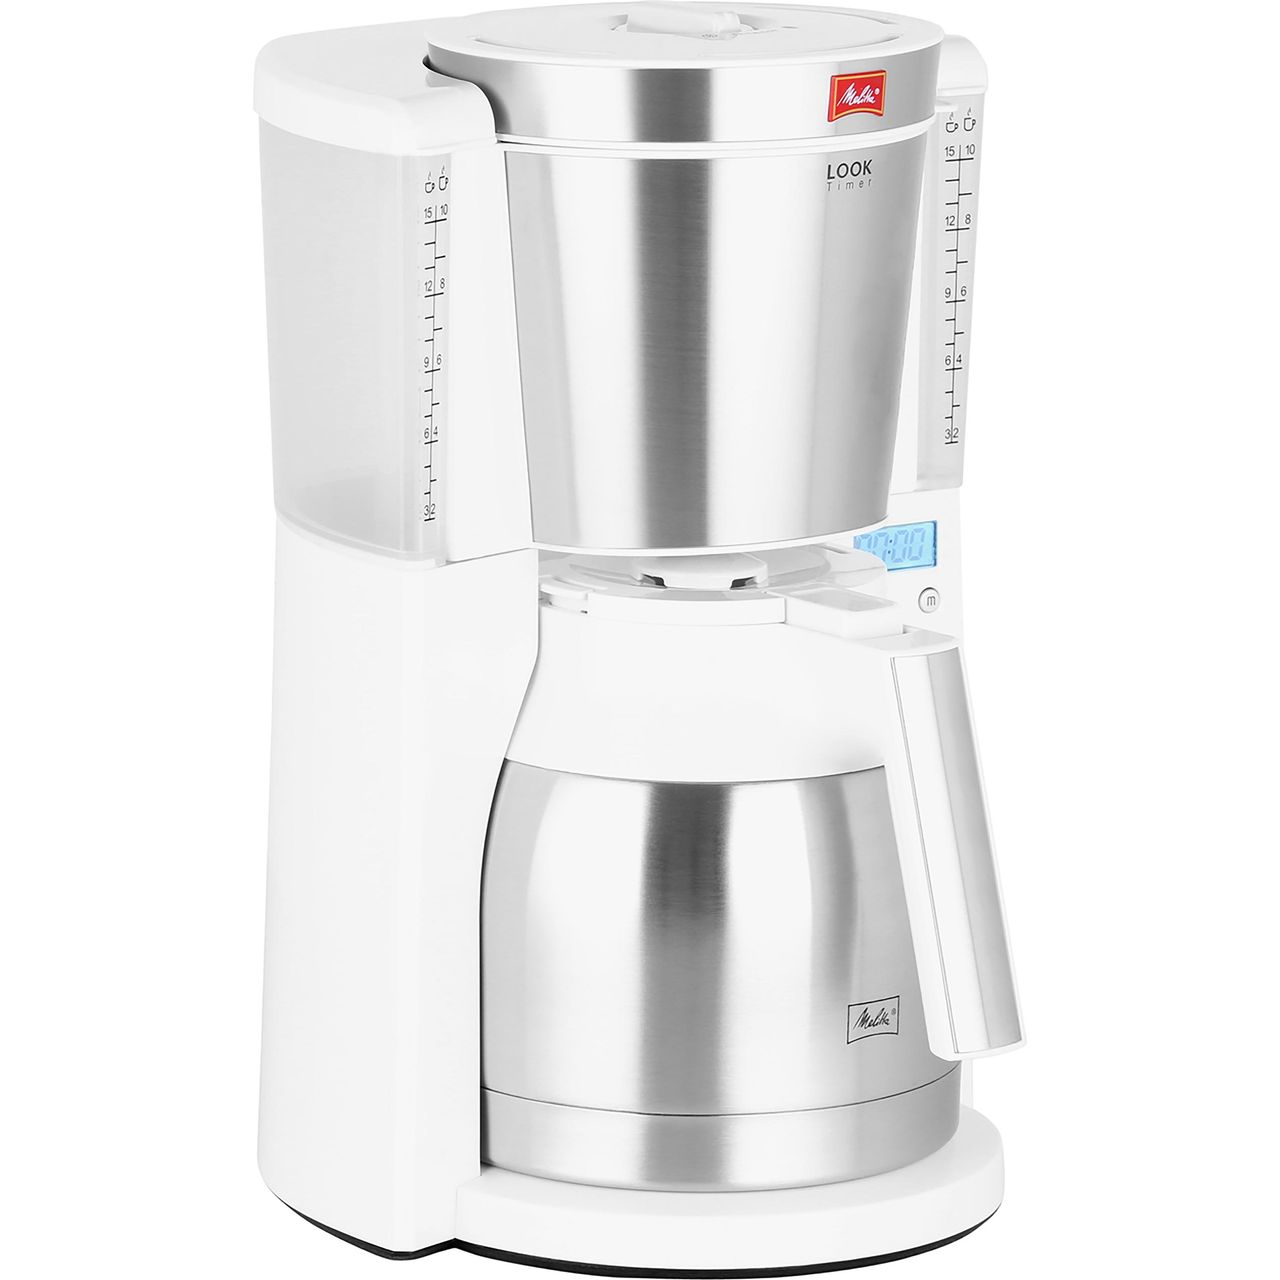 Melitta Look Iv Therm Timer 6738037 Filter Coffee Machine With Timer White